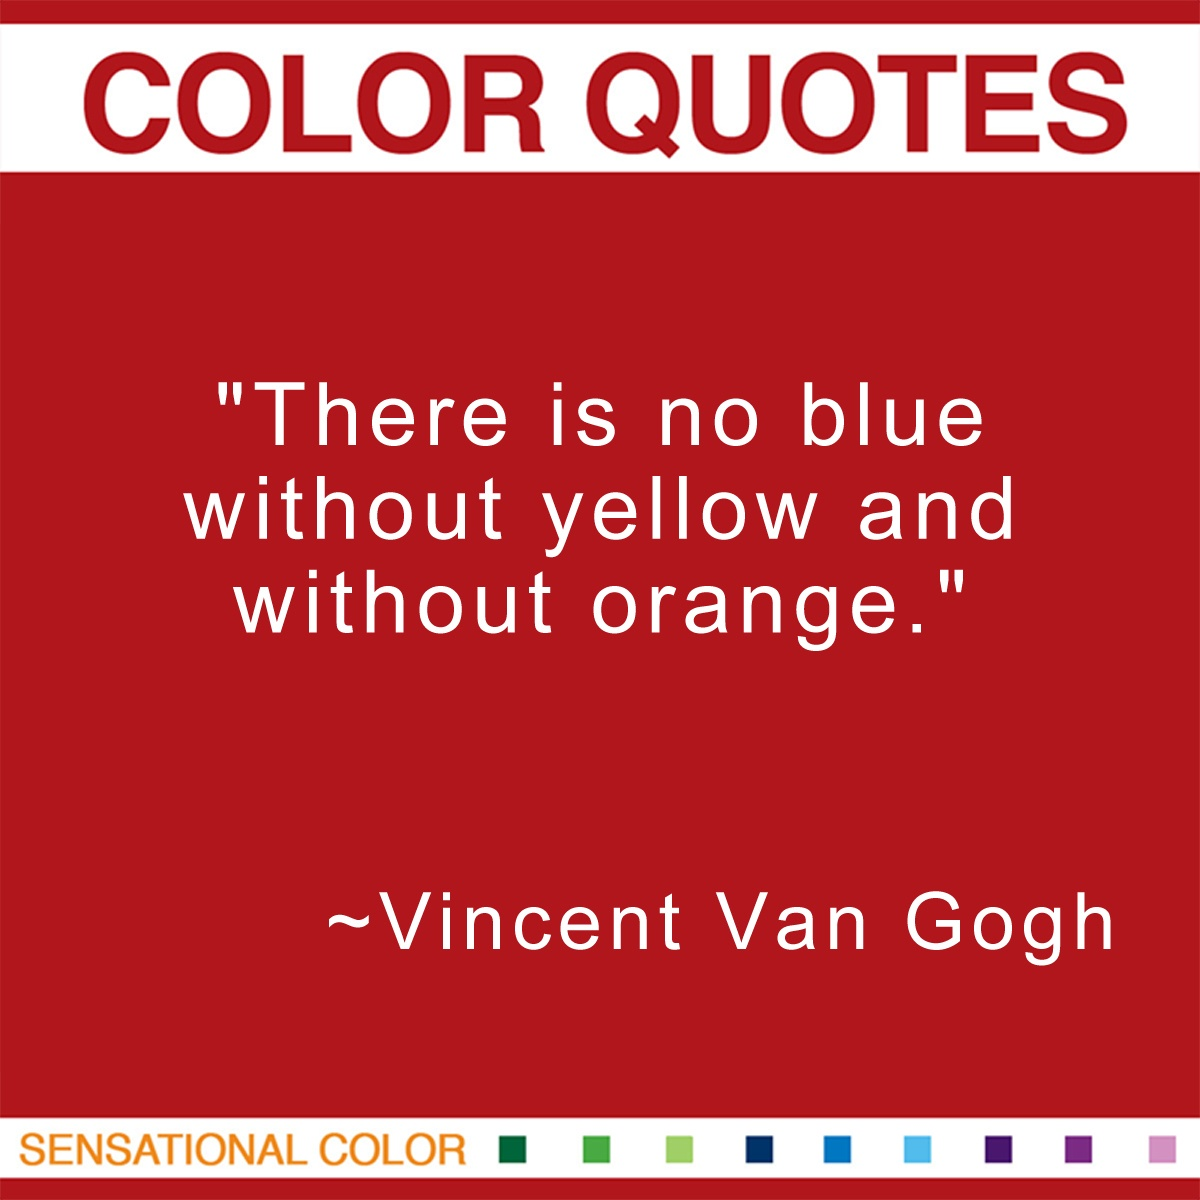 """There is no blue without yellow and without orange."" - Vincent Van Gogh"